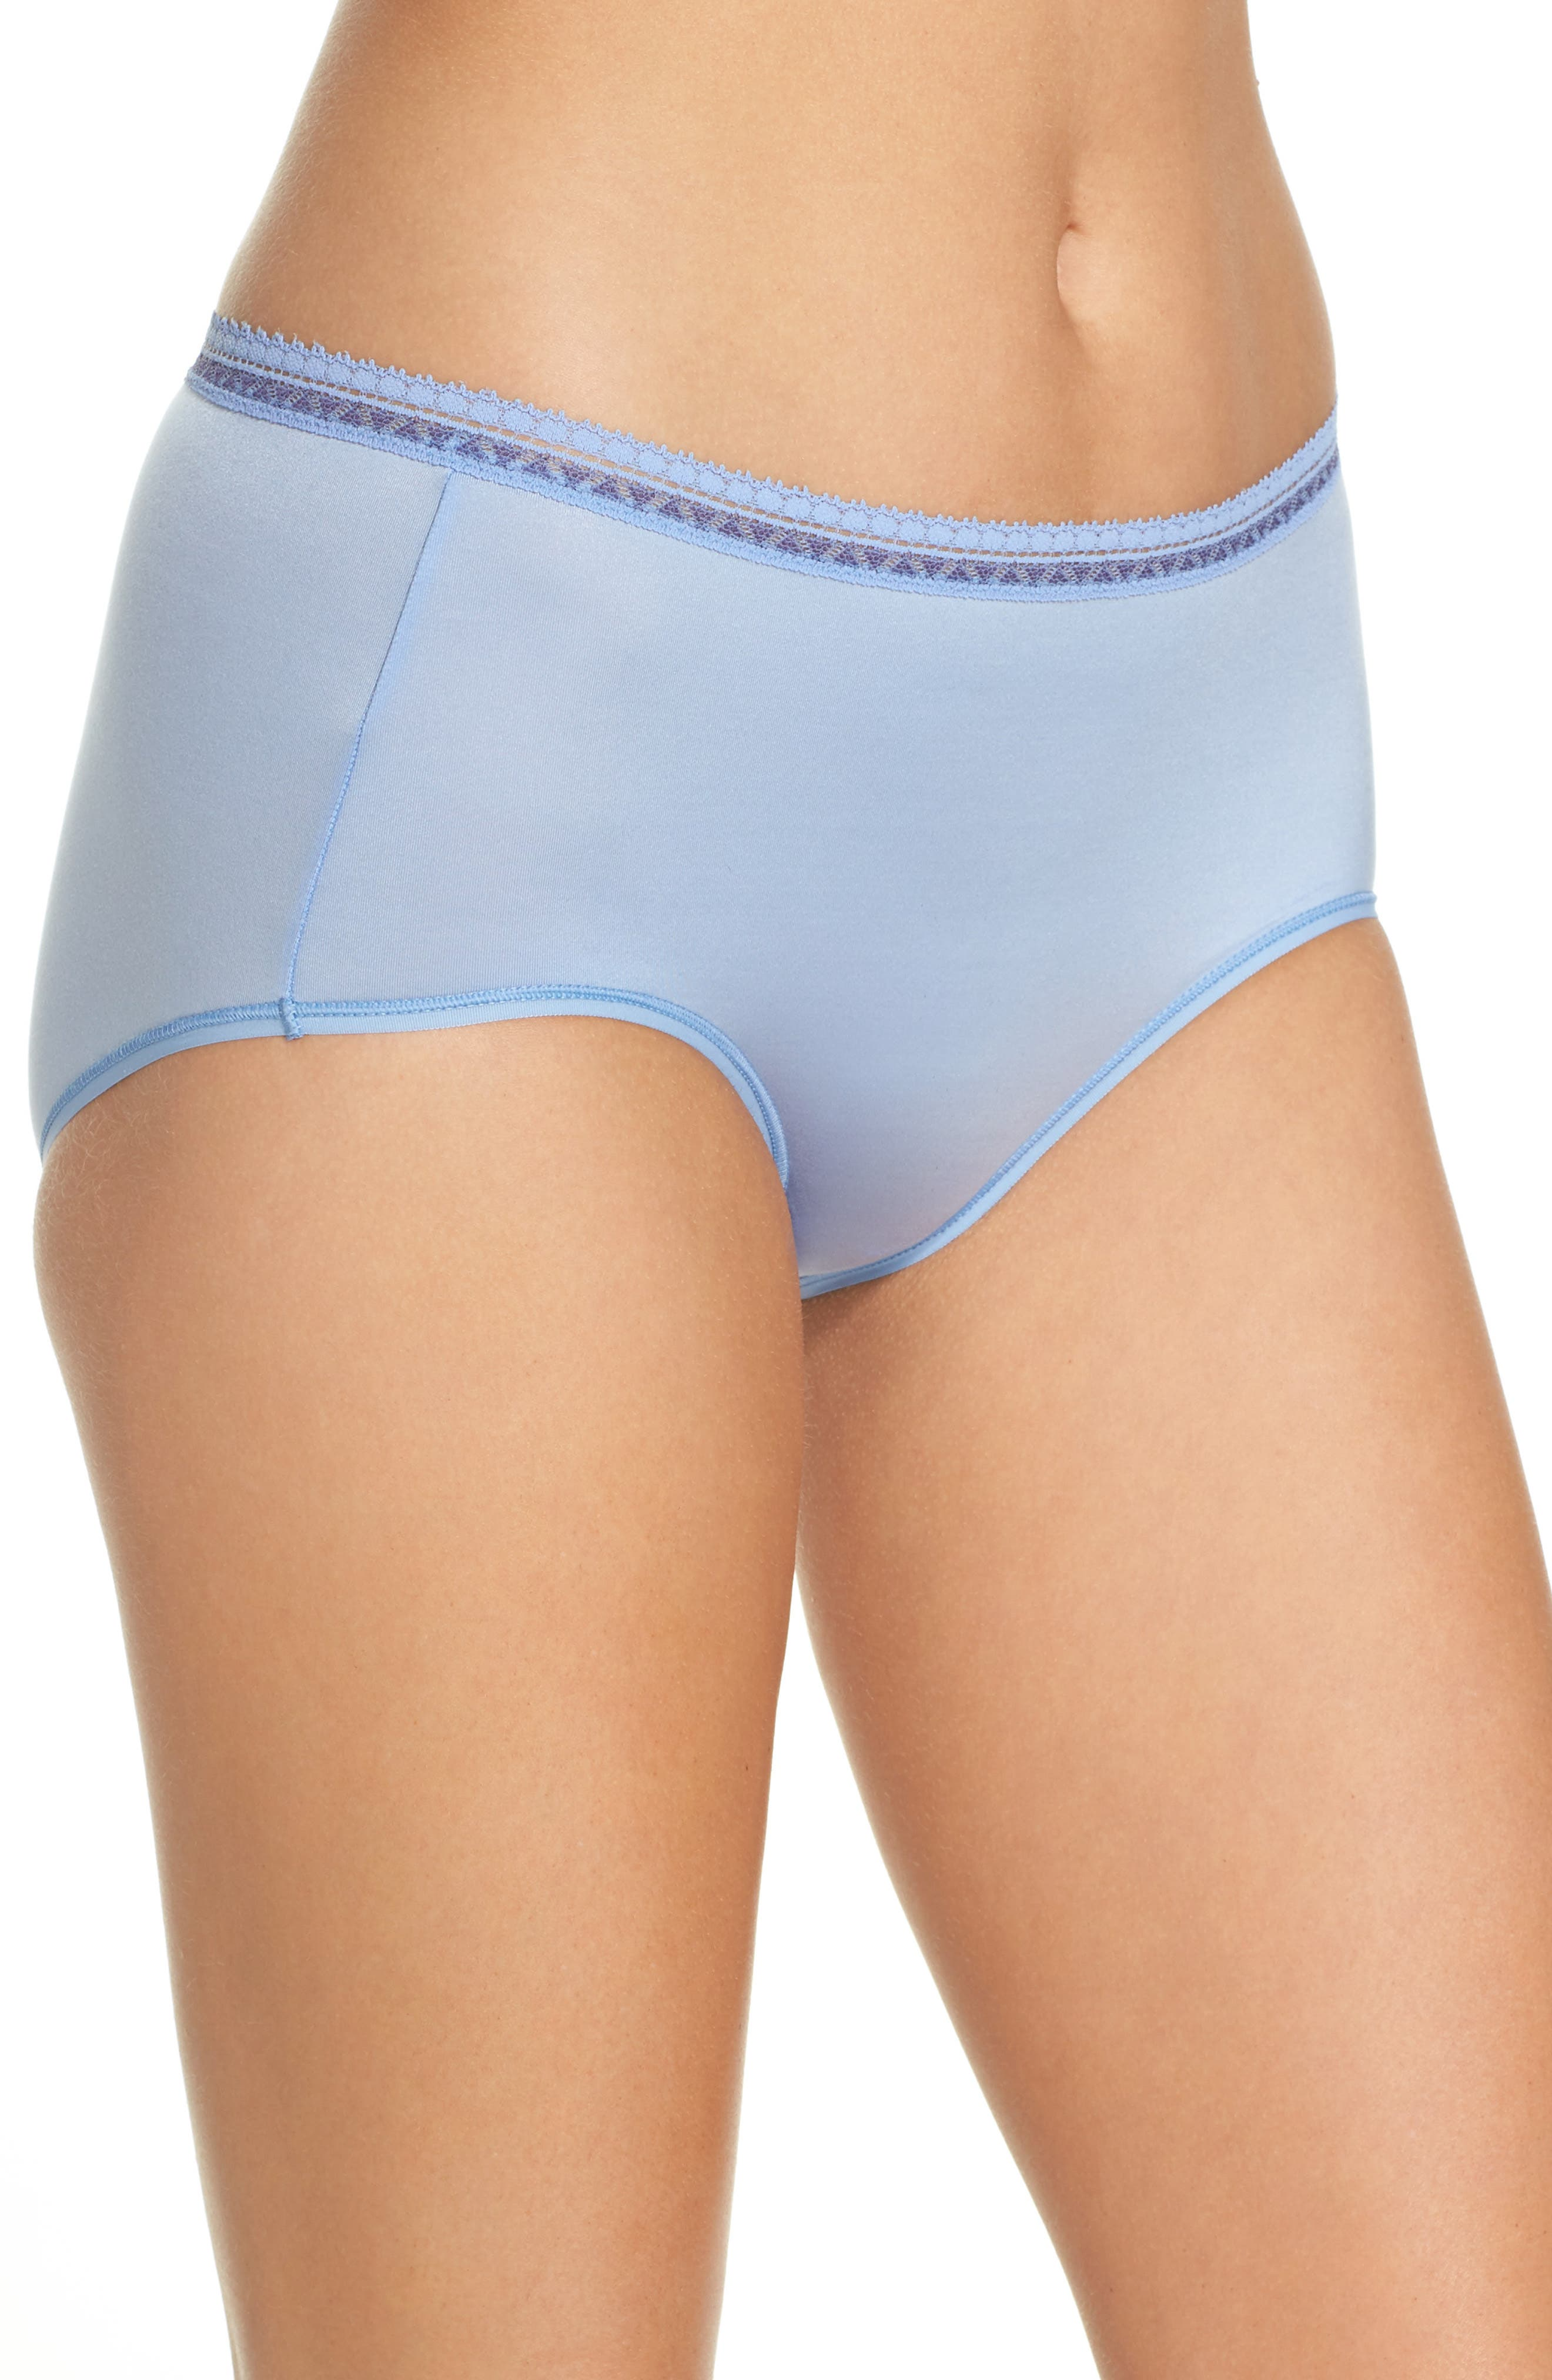 Alternate Image 3  - Wacoal Perfect Primer Briefs (3 for $39)